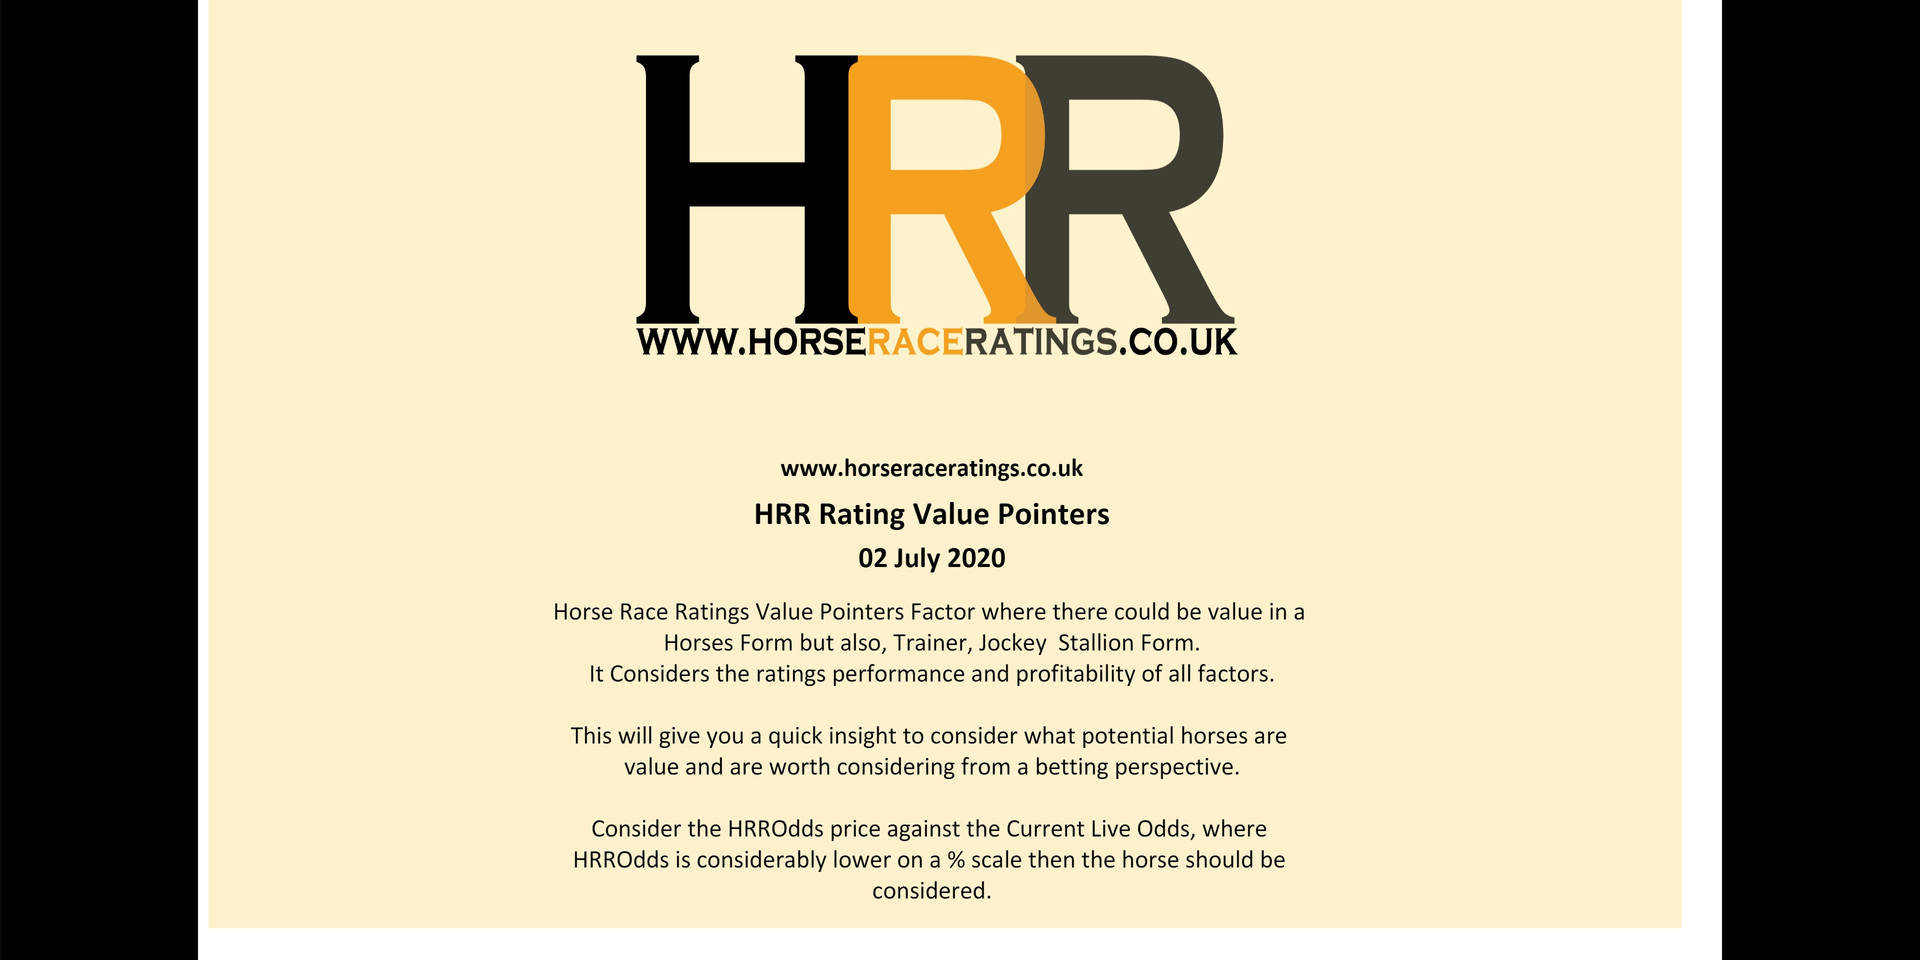 HRR Value Pointers